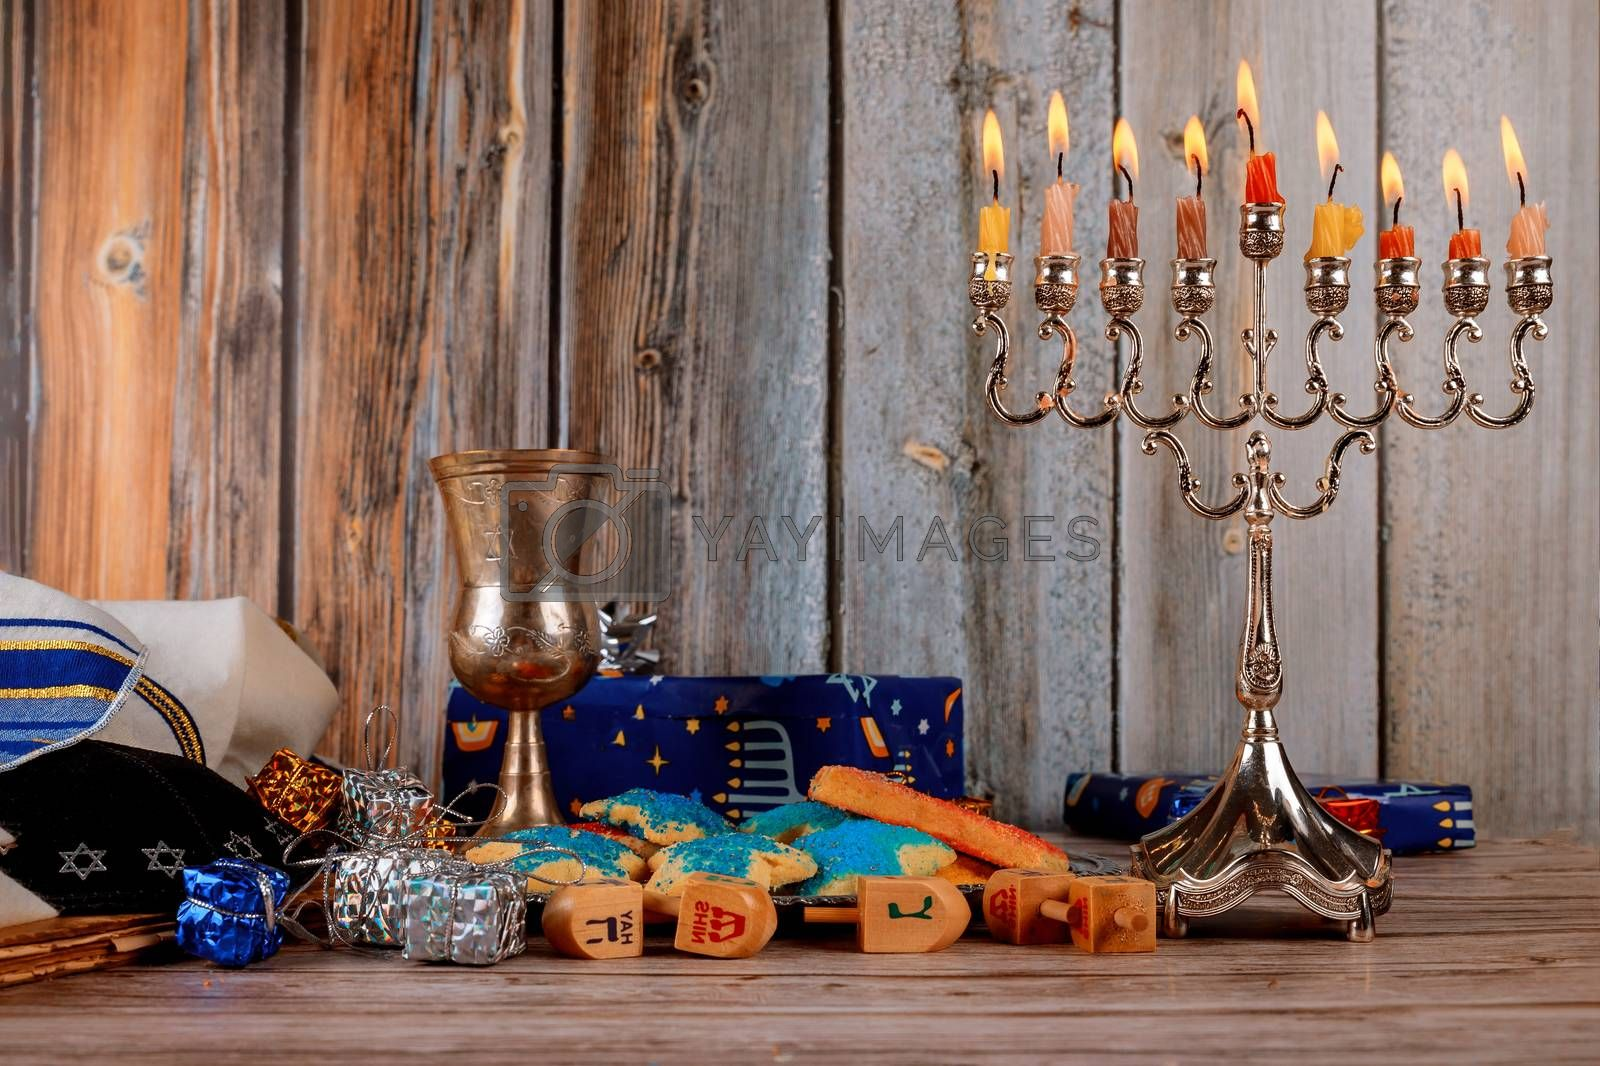 Hanukkah with menorah jewish holiday traditional Candelabra and wooden dreidels spinning top